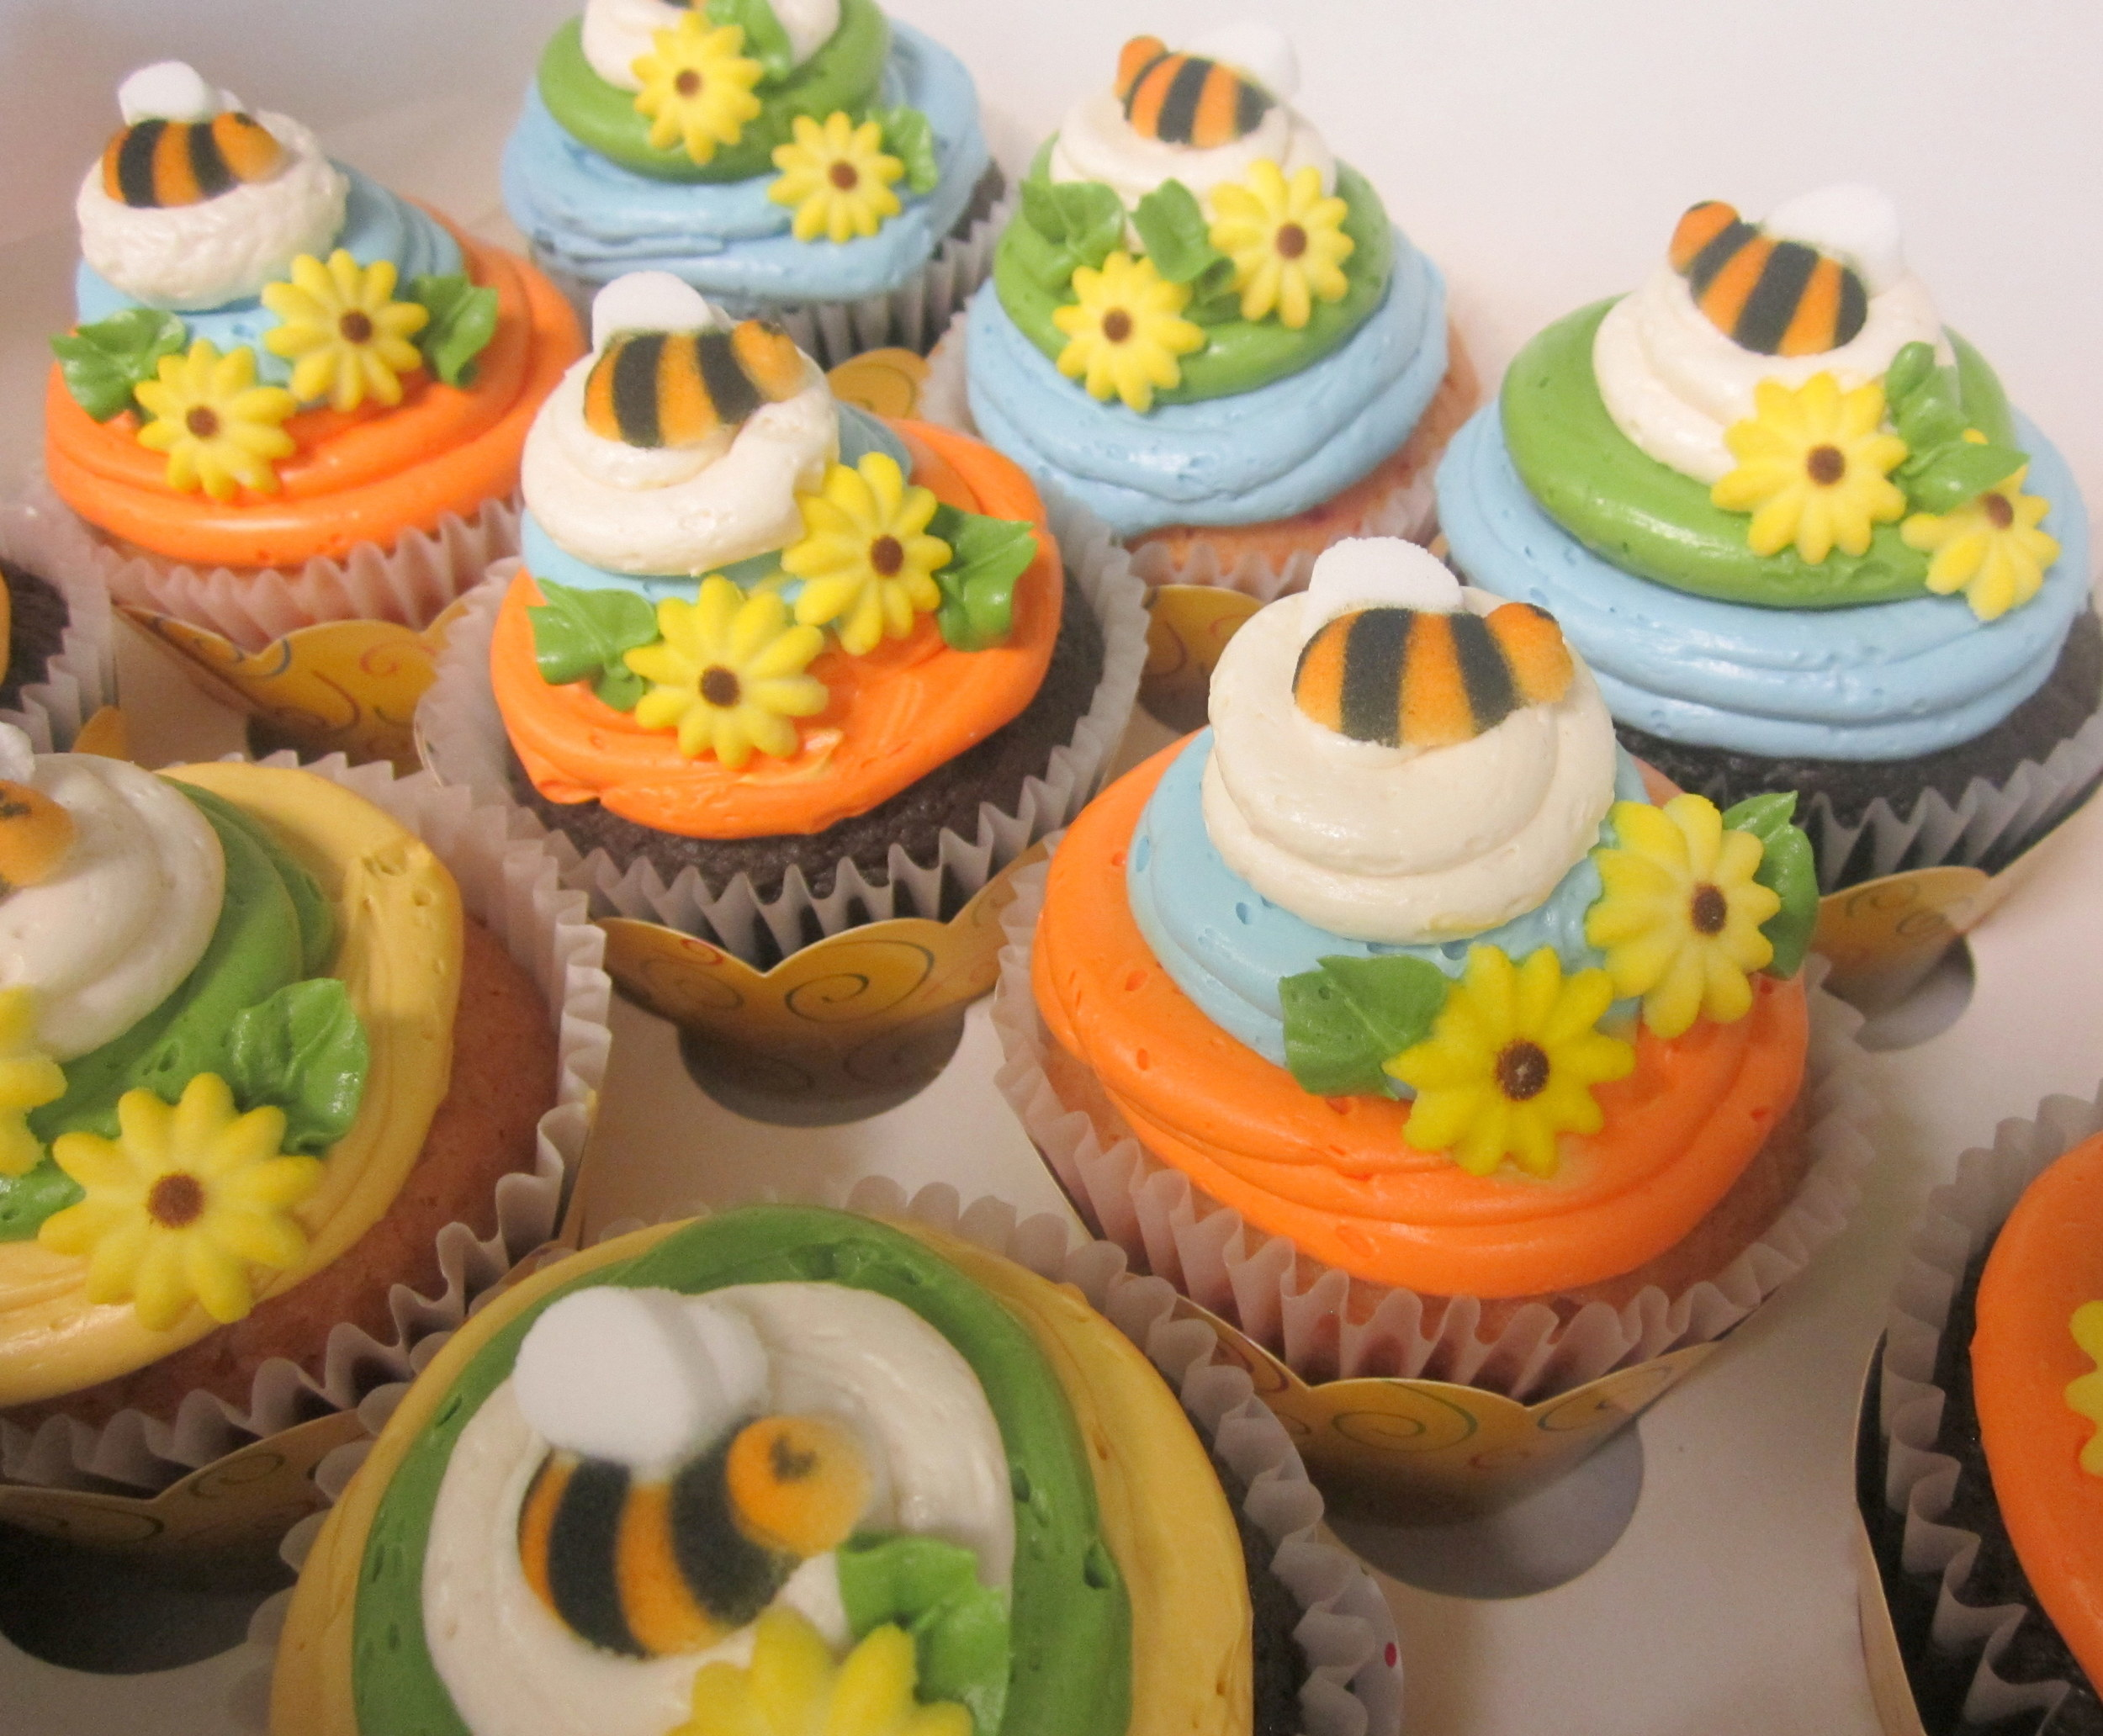 cupcakes-bees and flowers.JPG